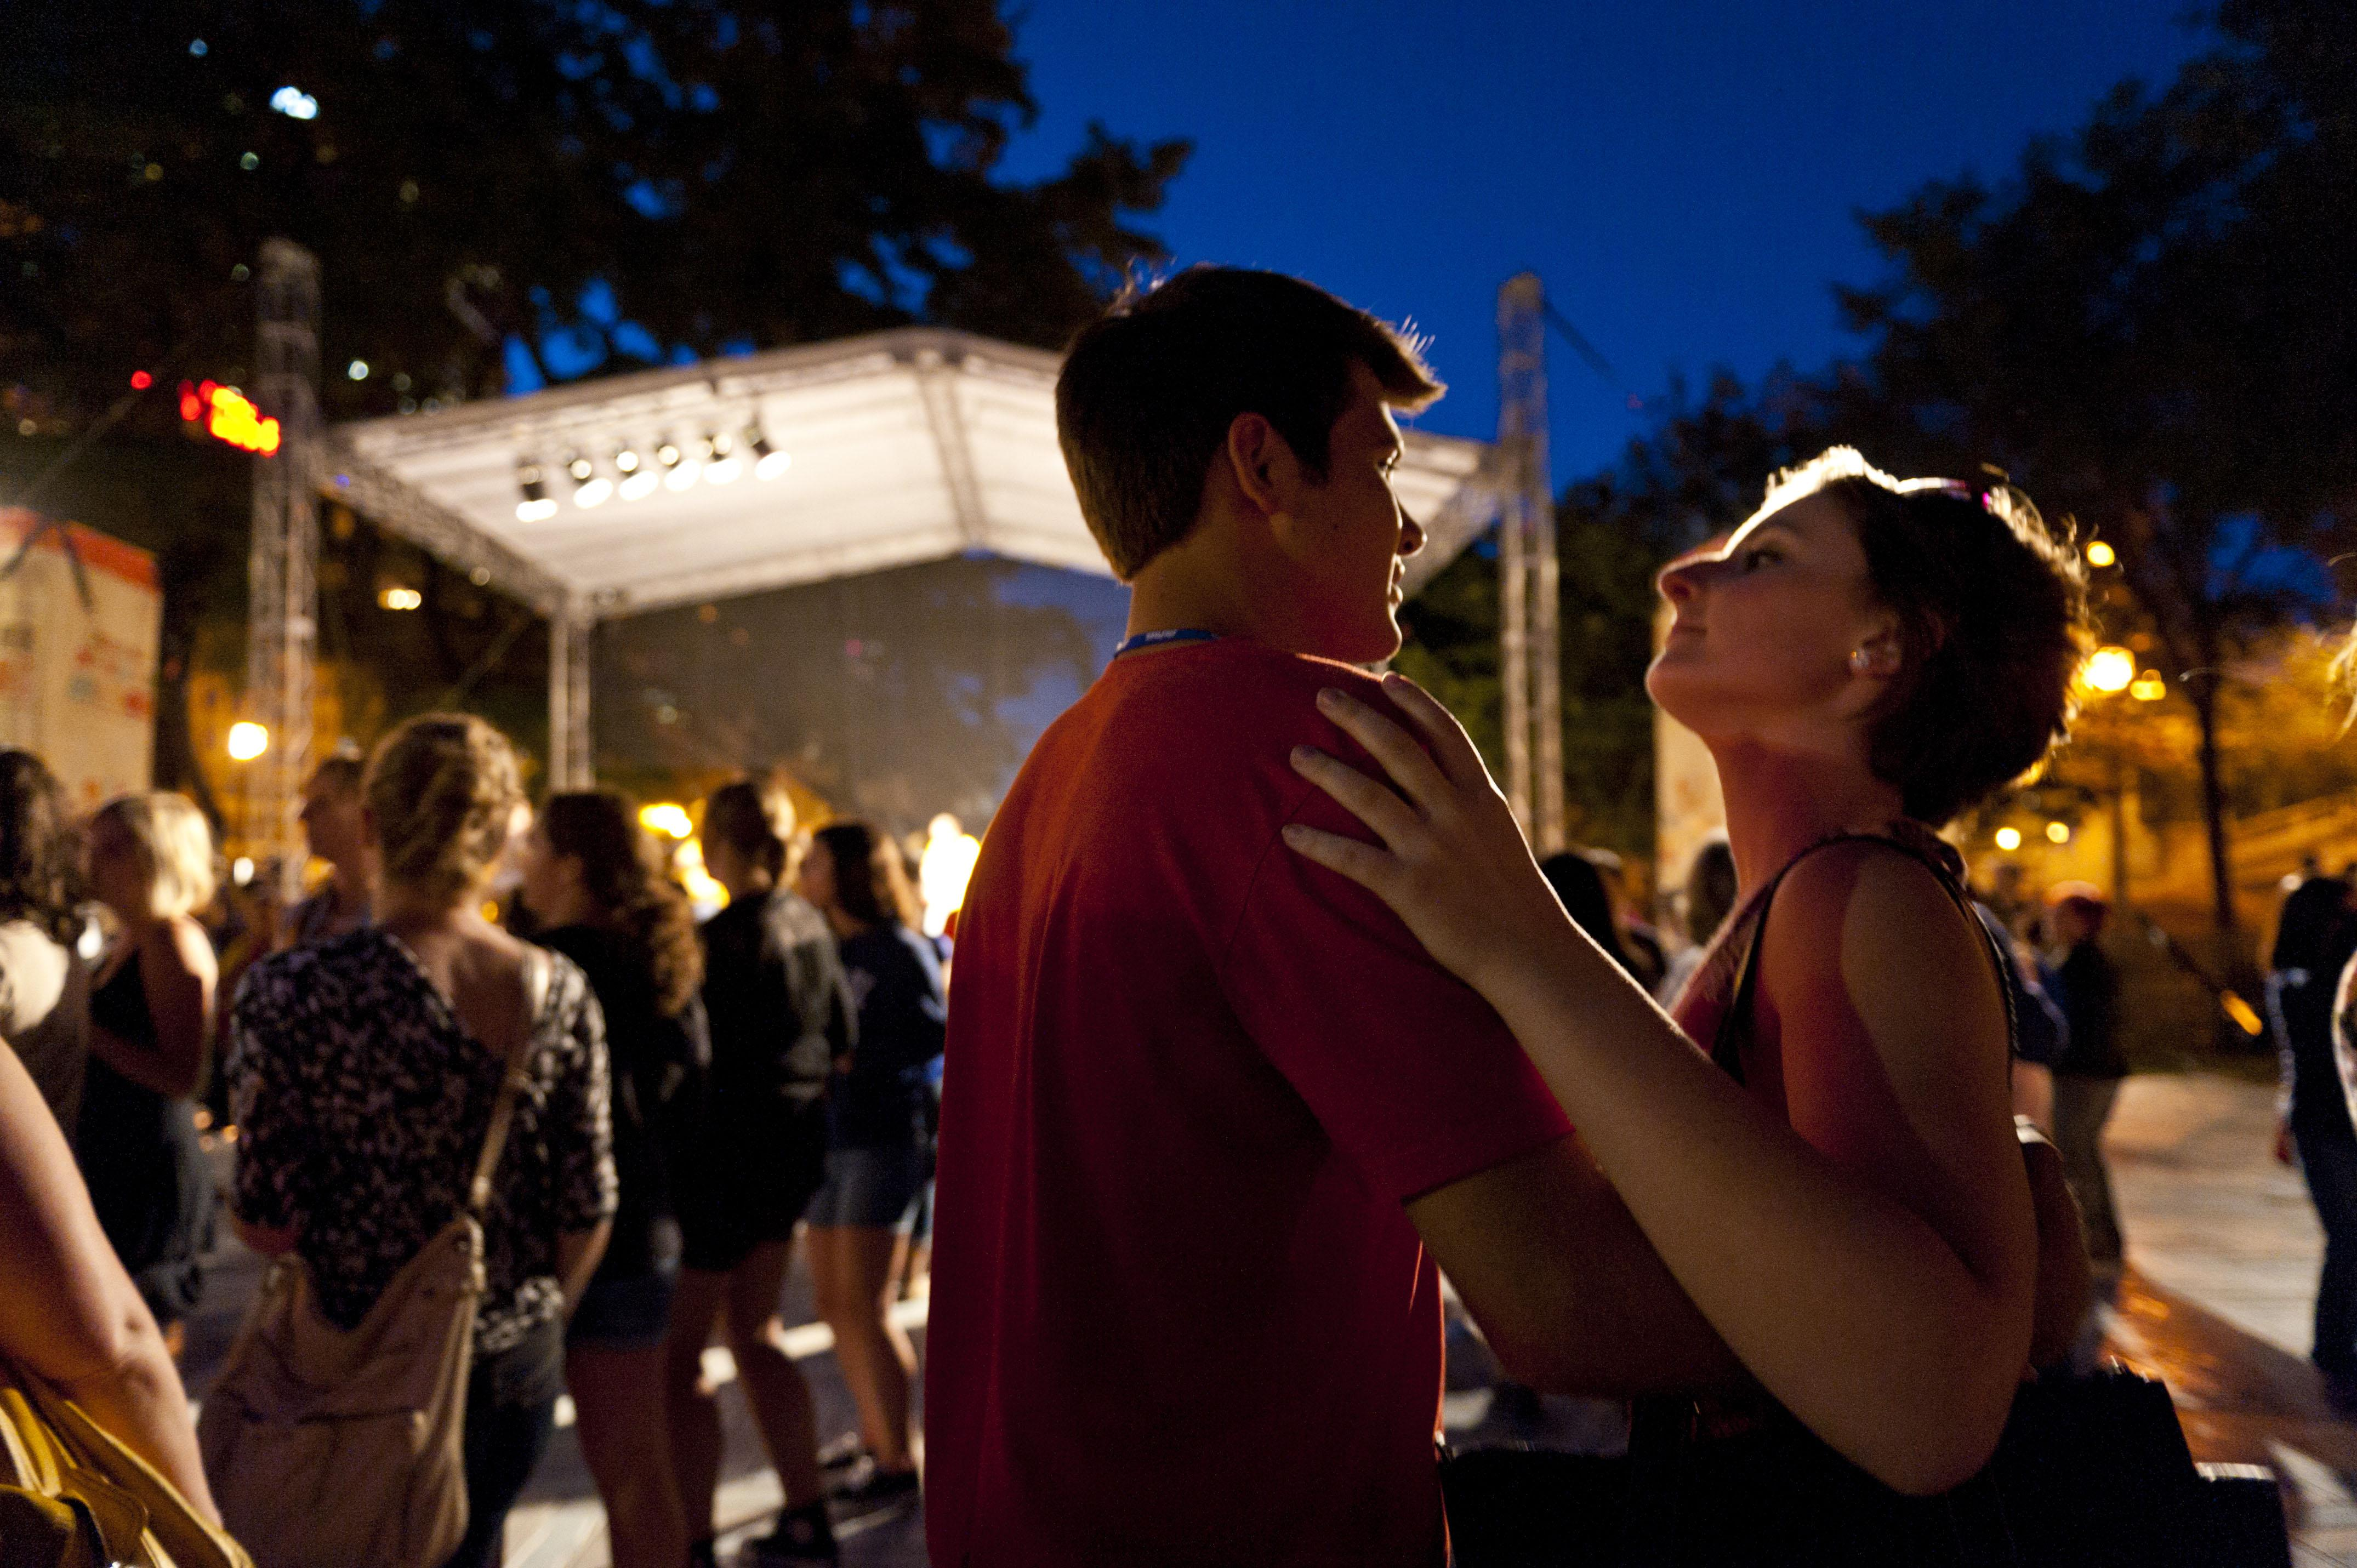 Grab a dance partner for the city's annual SummerDance festival through Sept. 11. (Courtesy City of Chicago)